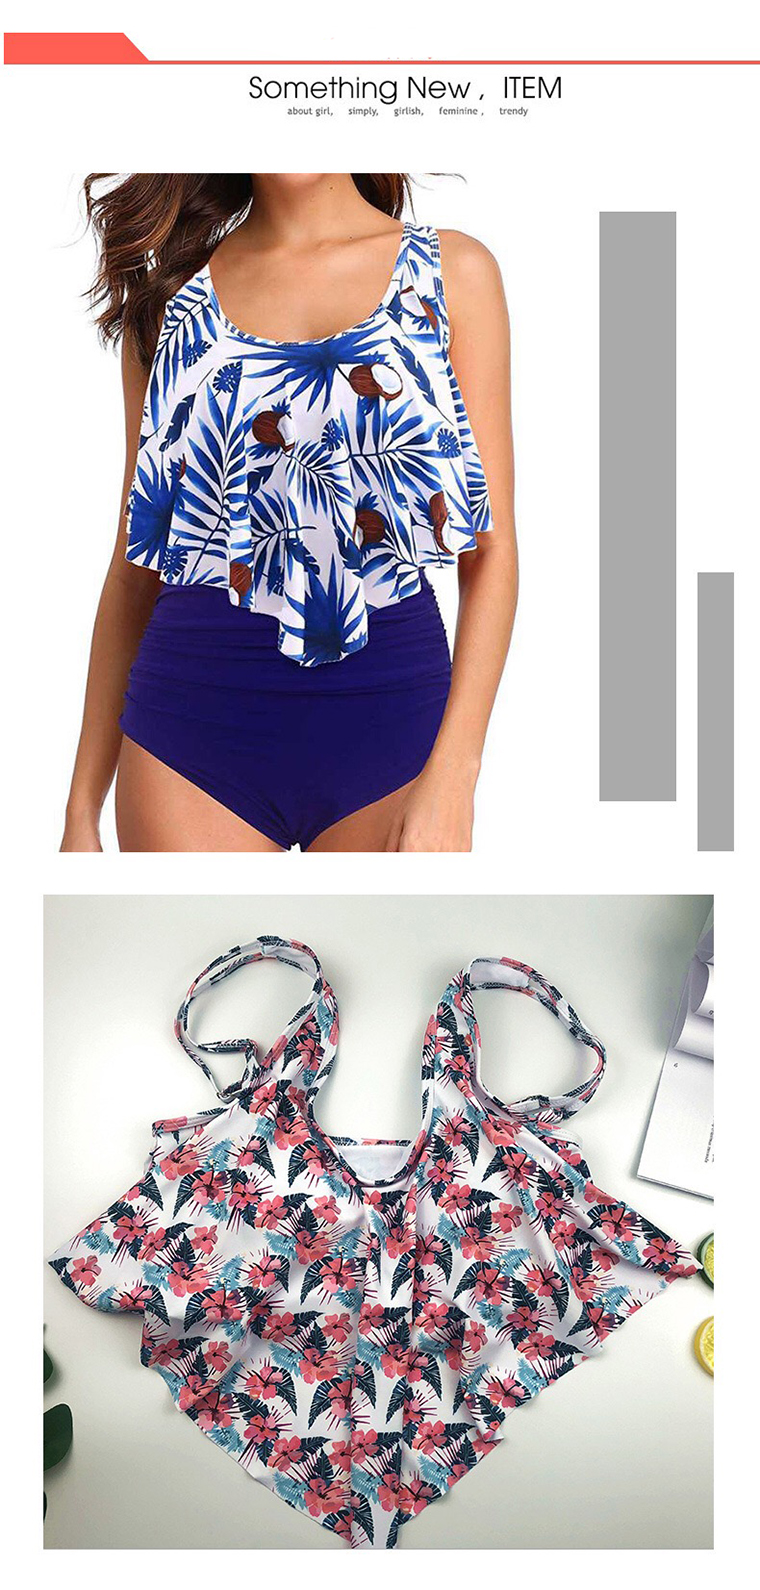 Nieuwe Aangekomen Best Selling Fashion Badmode Beachwear Cover Up Baby Zwemmen Pak Strand Set